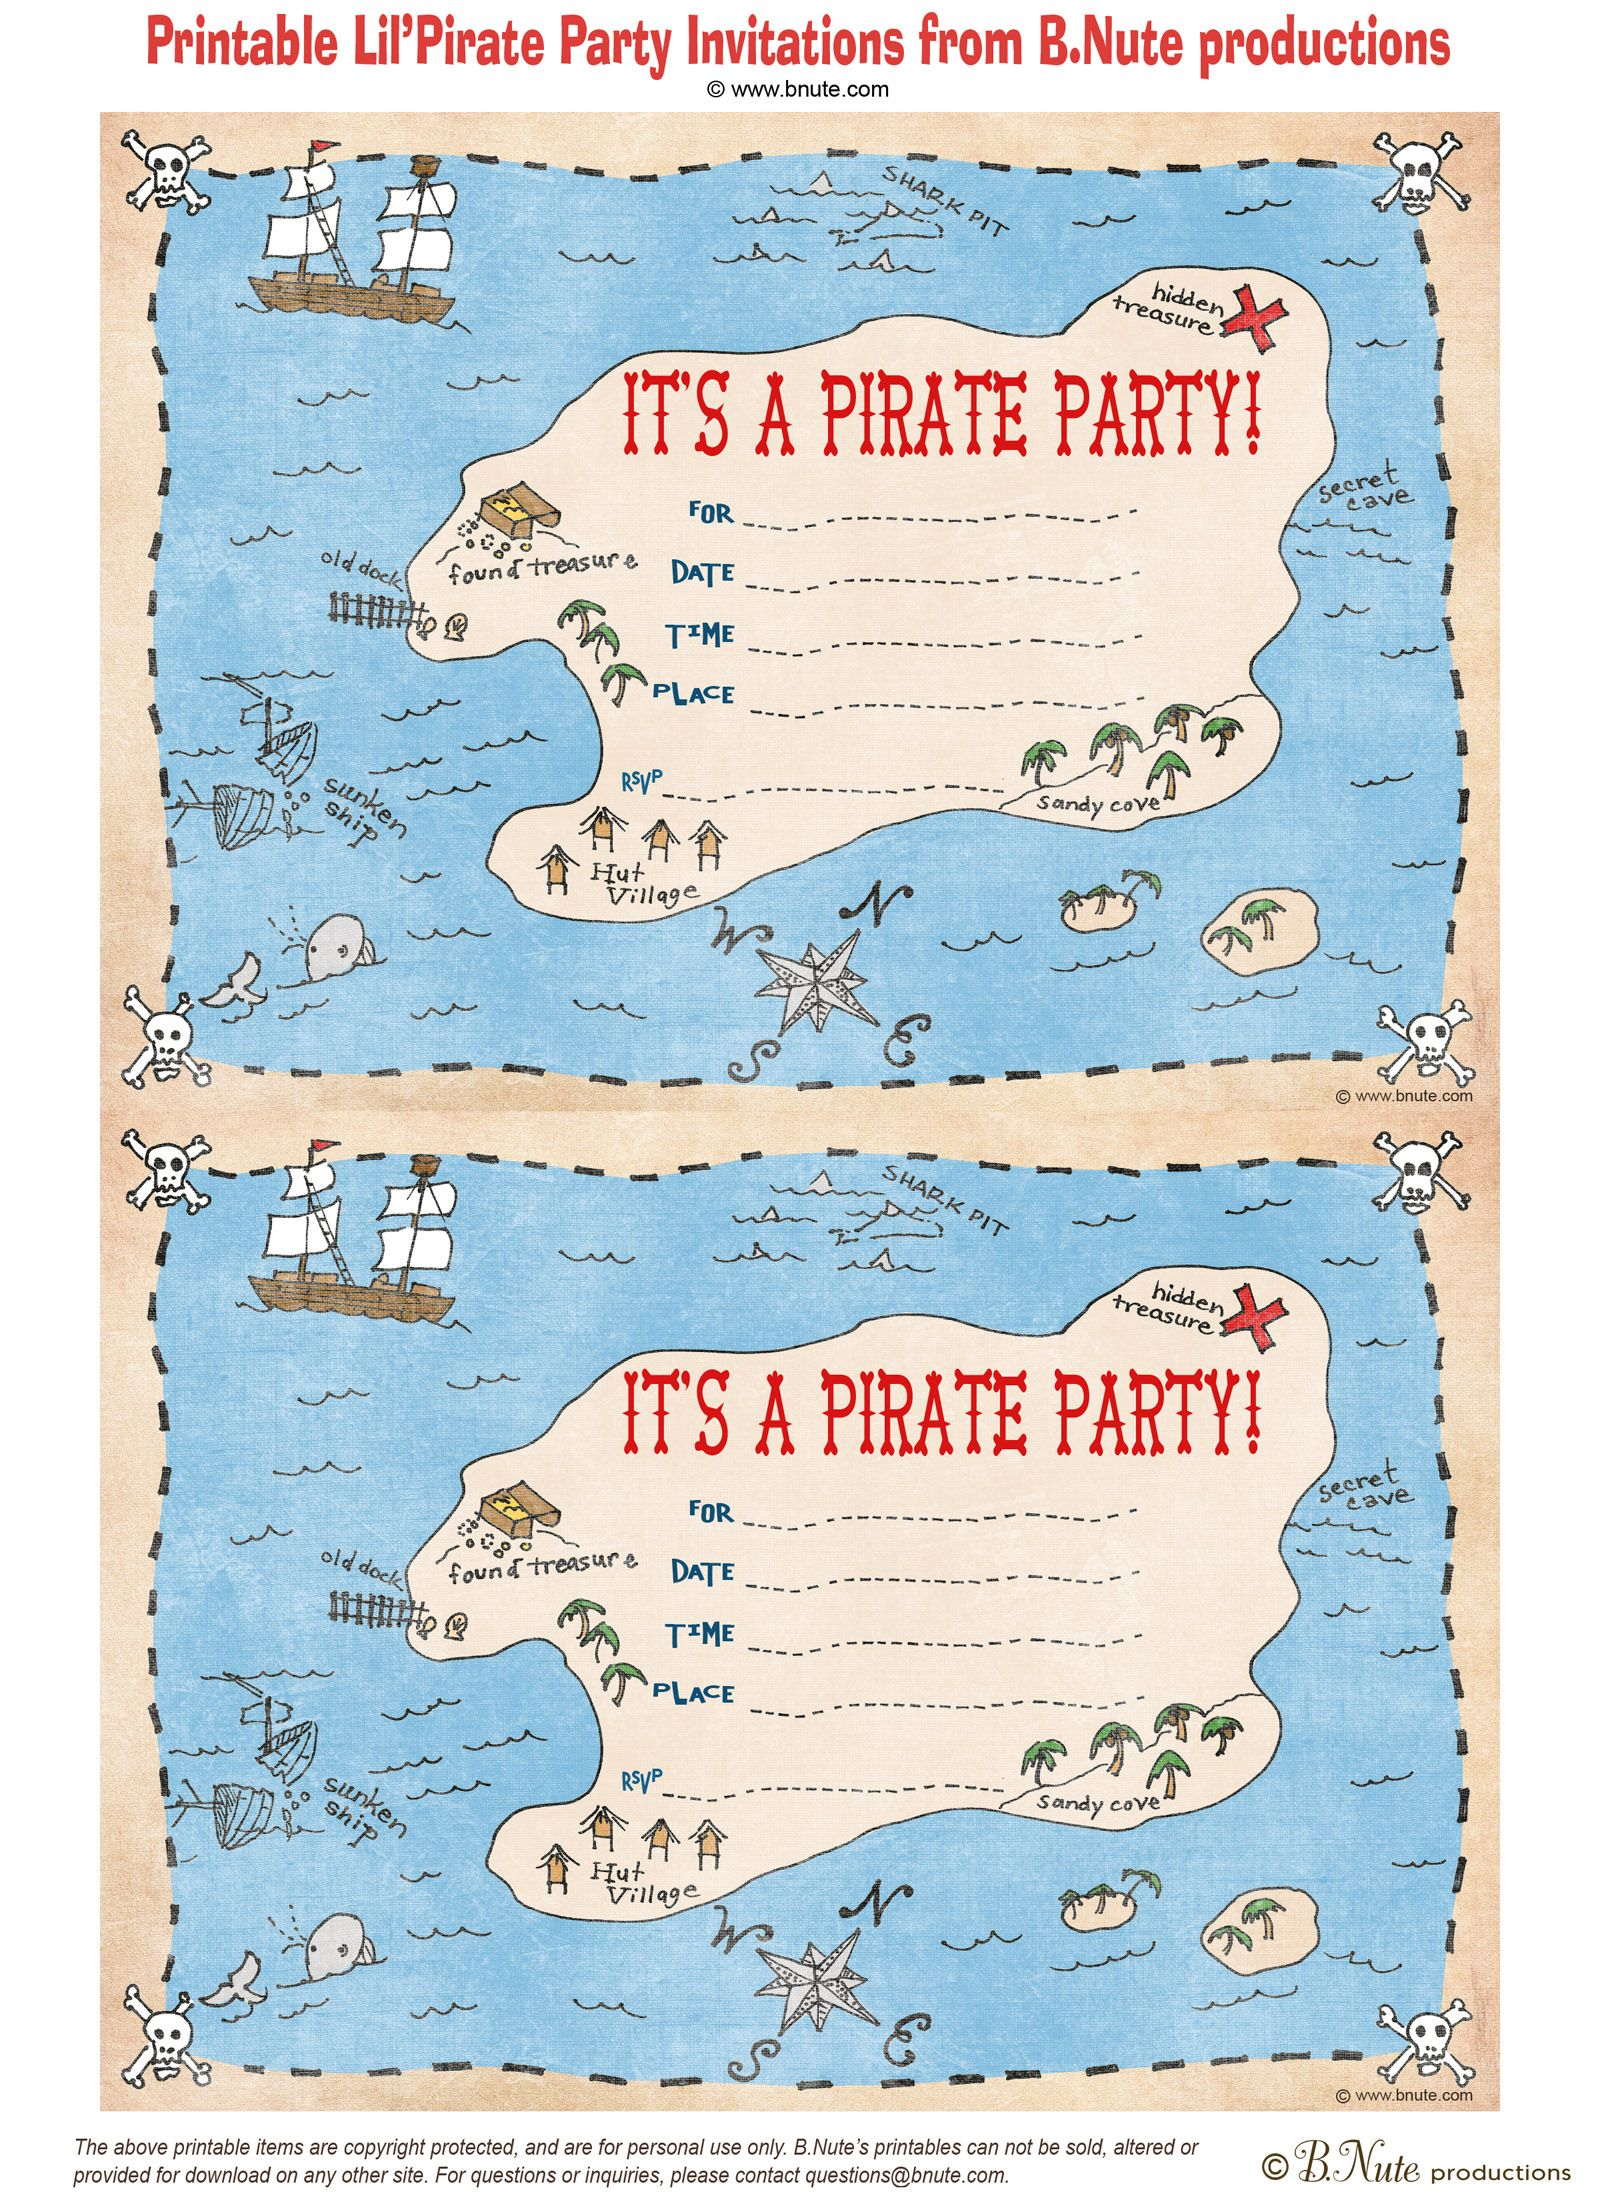 free printable Pirate Party invitation httpbnuteblogspotcom201103 free printable pirate party invitationshtml